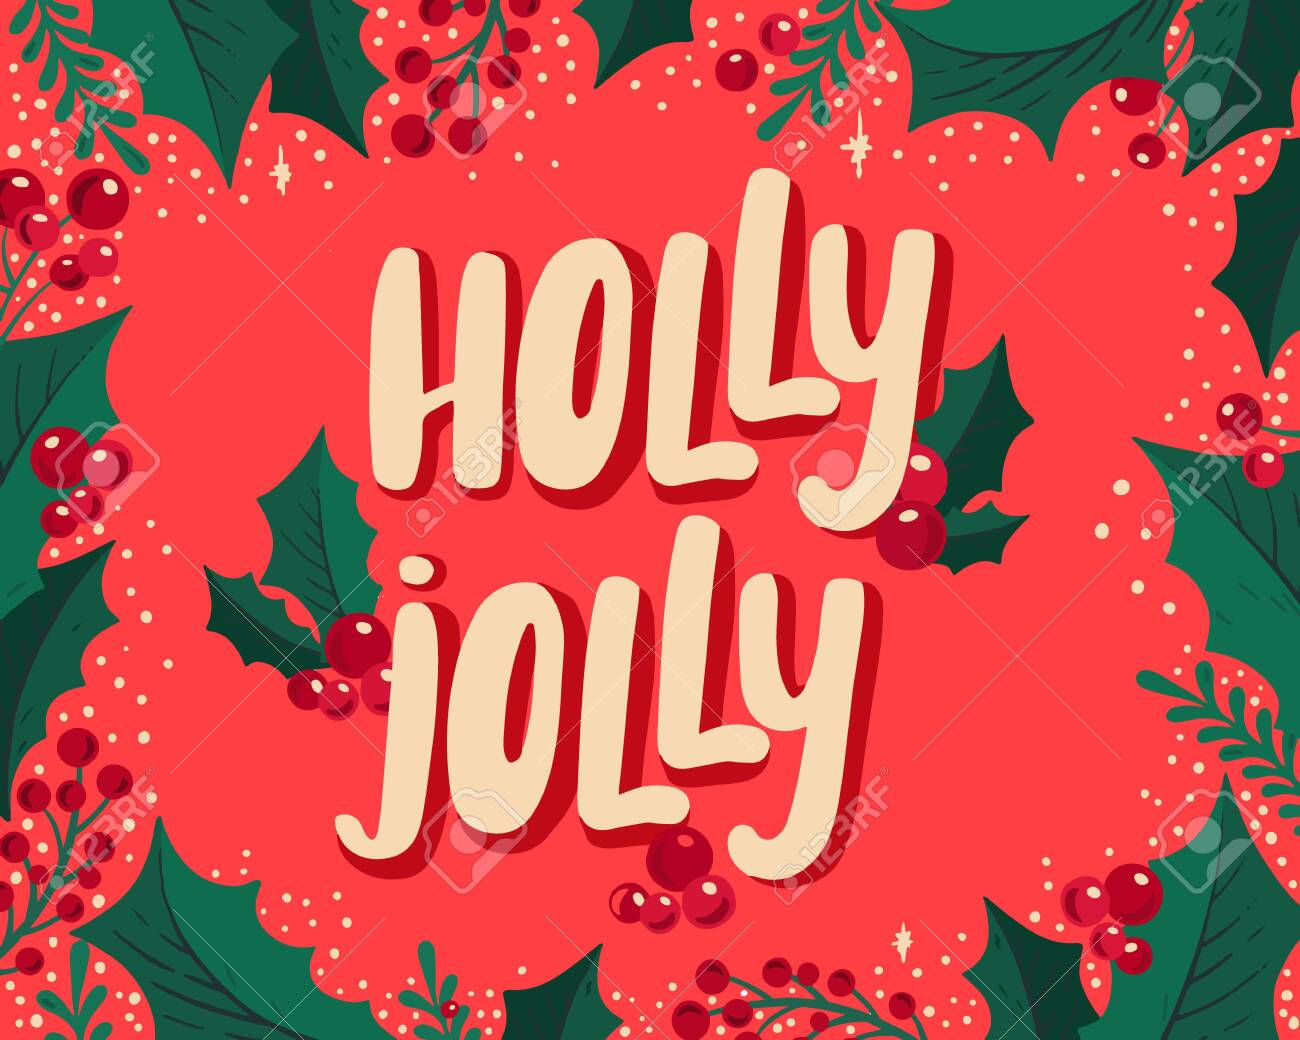 Christmas Holiday Party.Christmas And New Year Background For Holiday Party Vector Illustration